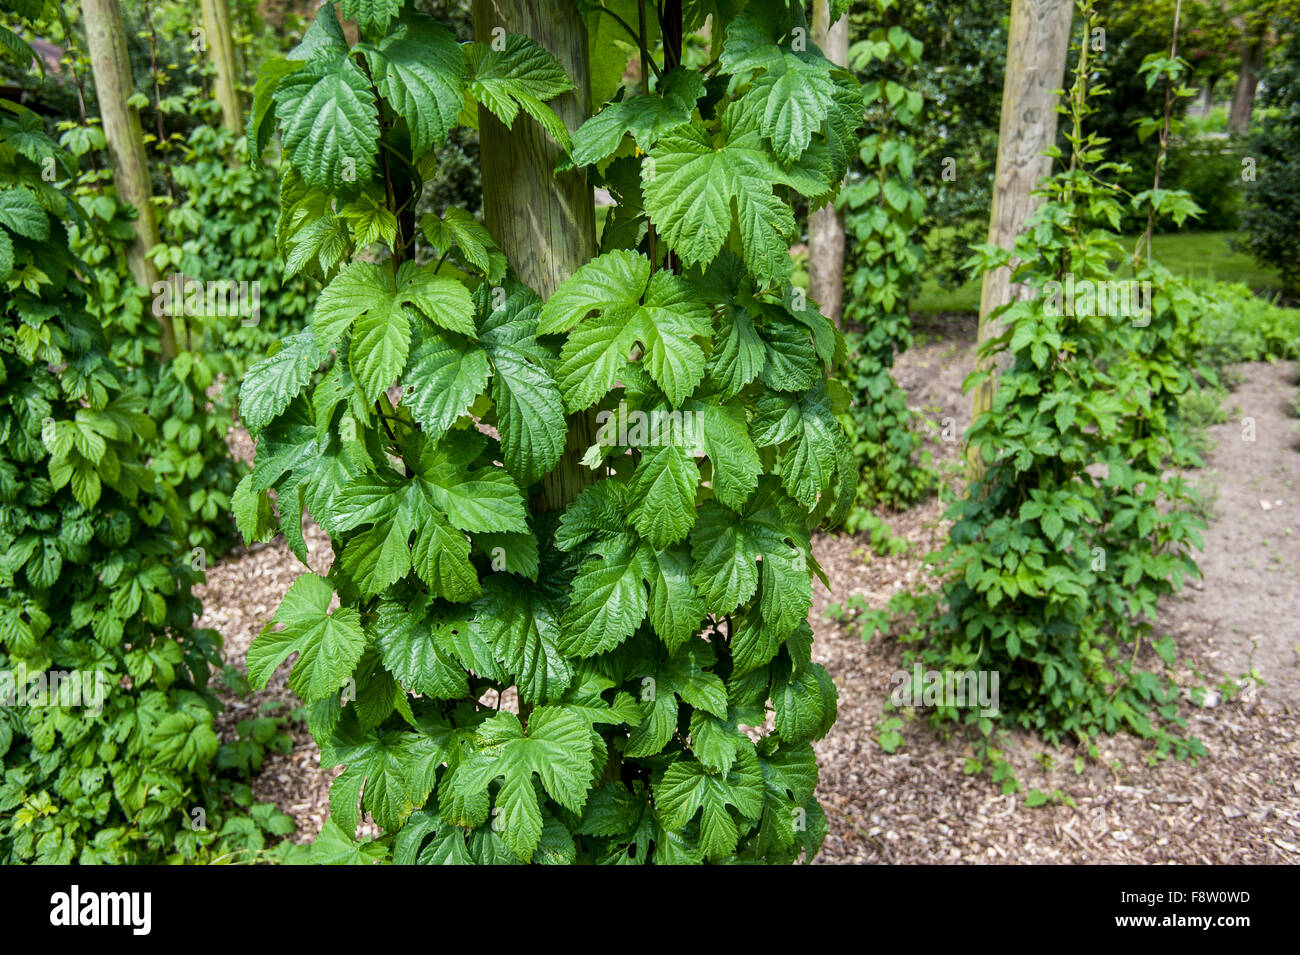 Common Hop (Humulus lupulus) bines / vines growing upwards along wires - Stock Image